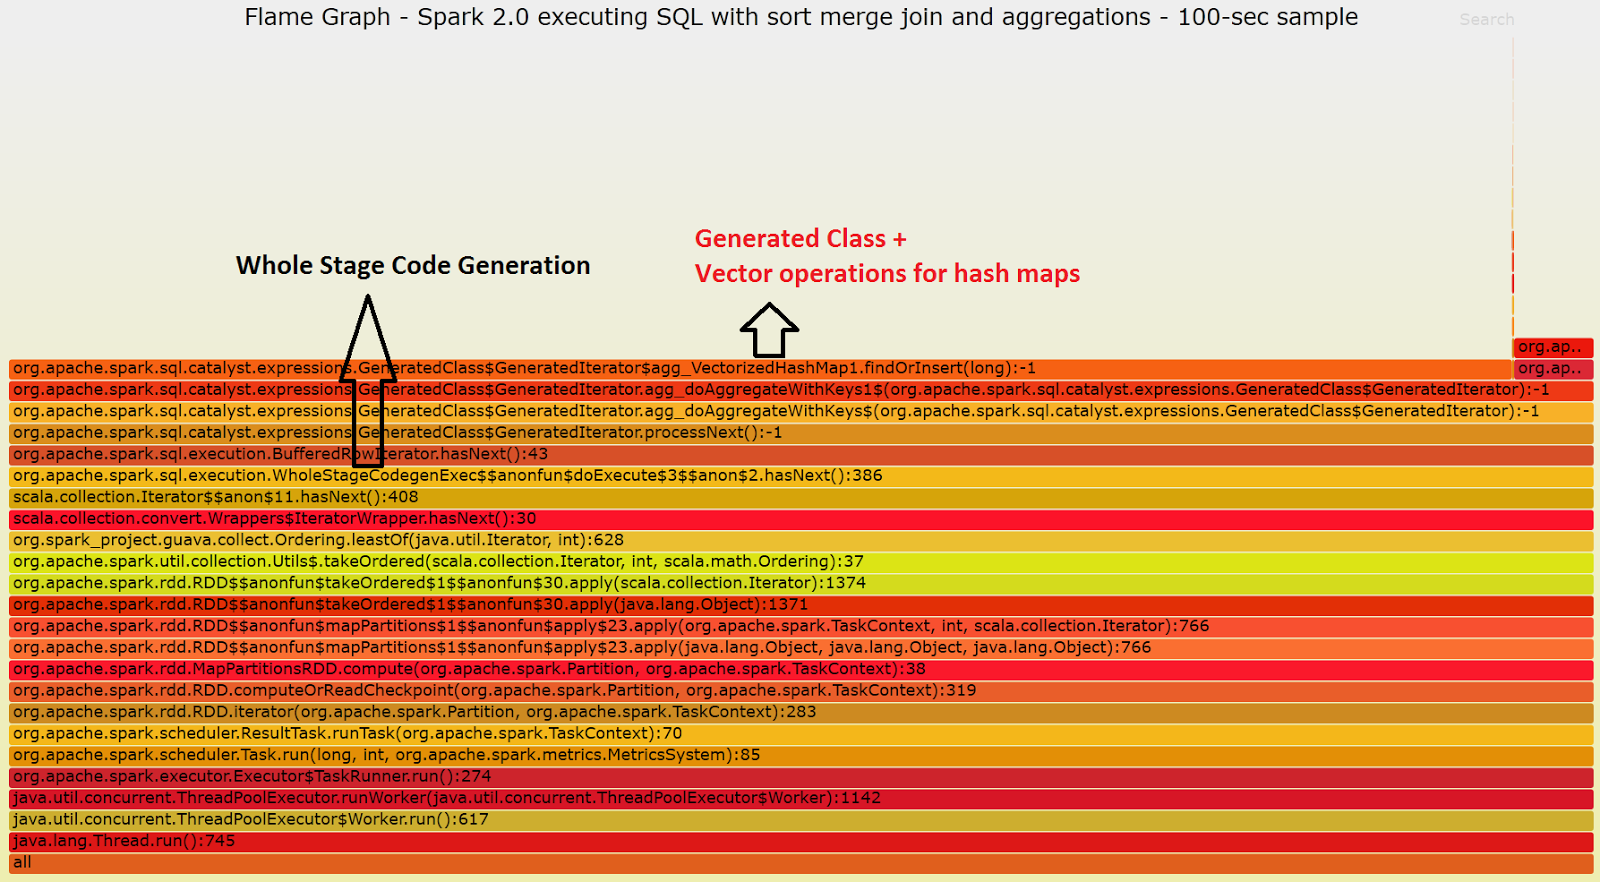 flamegraph_spark20_blog_wholestagecodegeneration_annotated